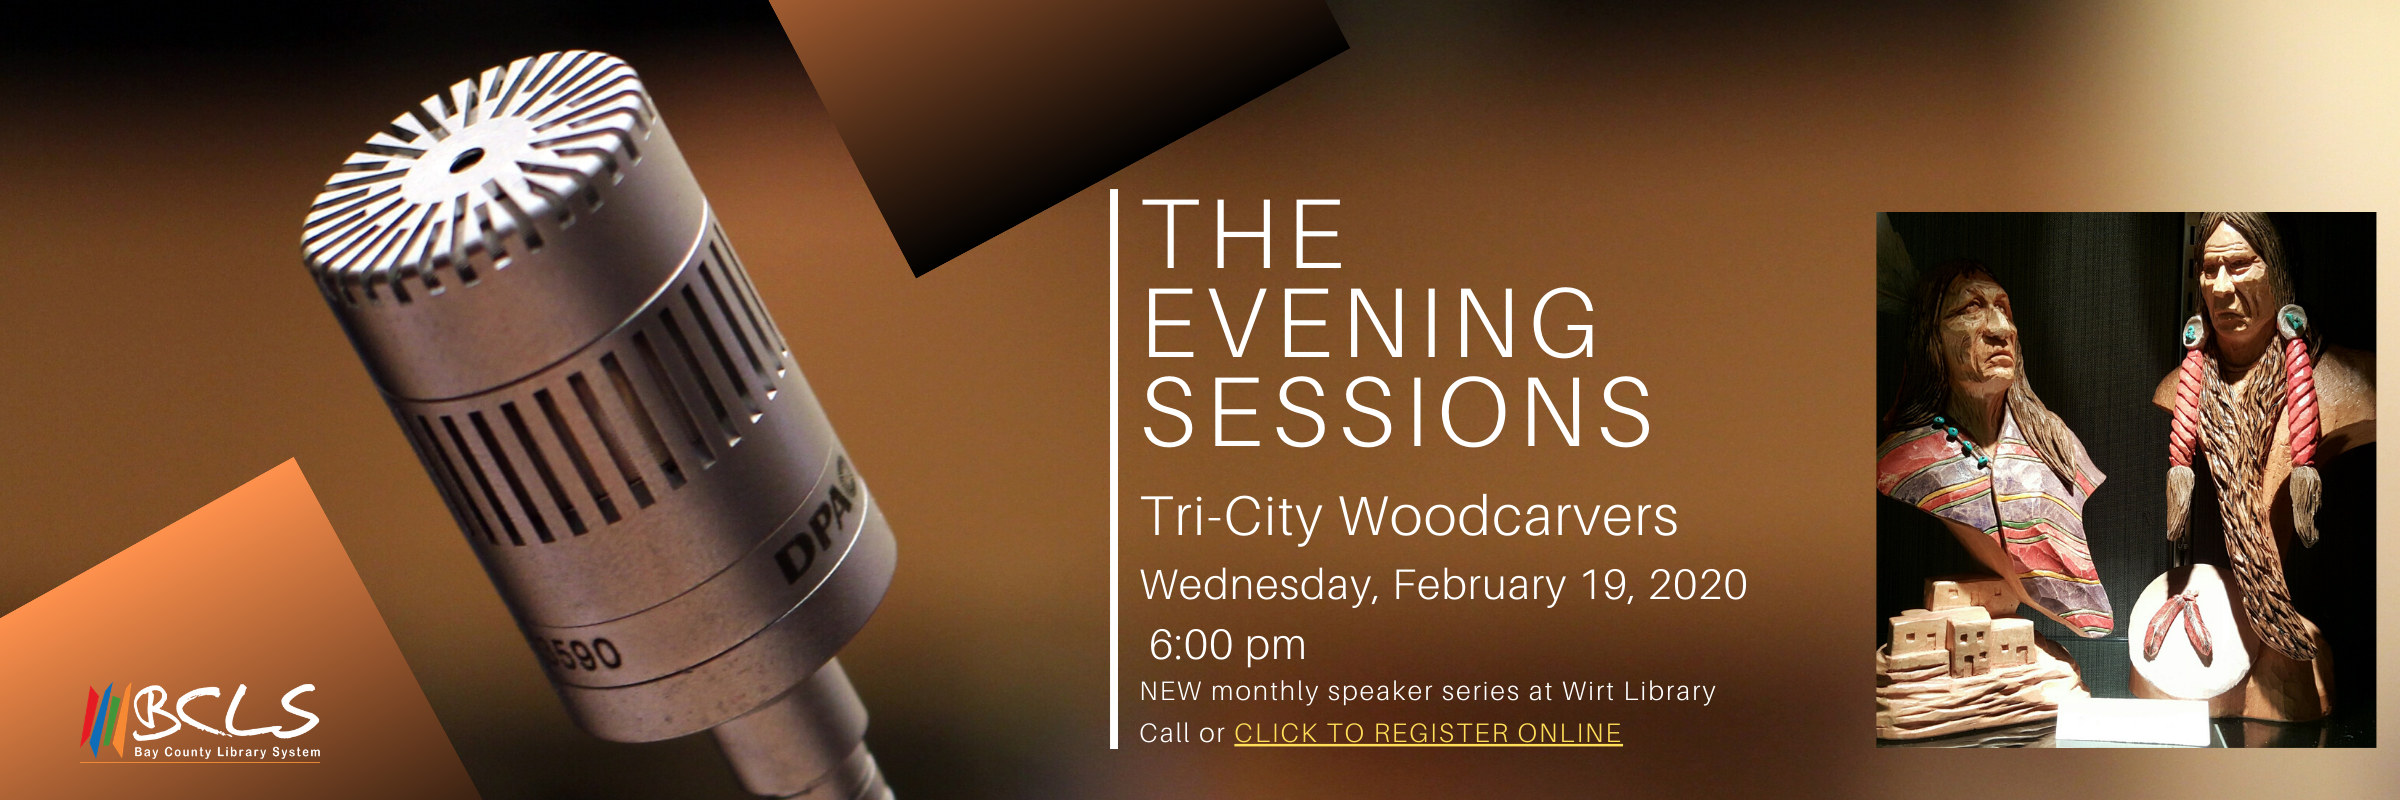 Evening Sessions with Tri-City Woodcarvers